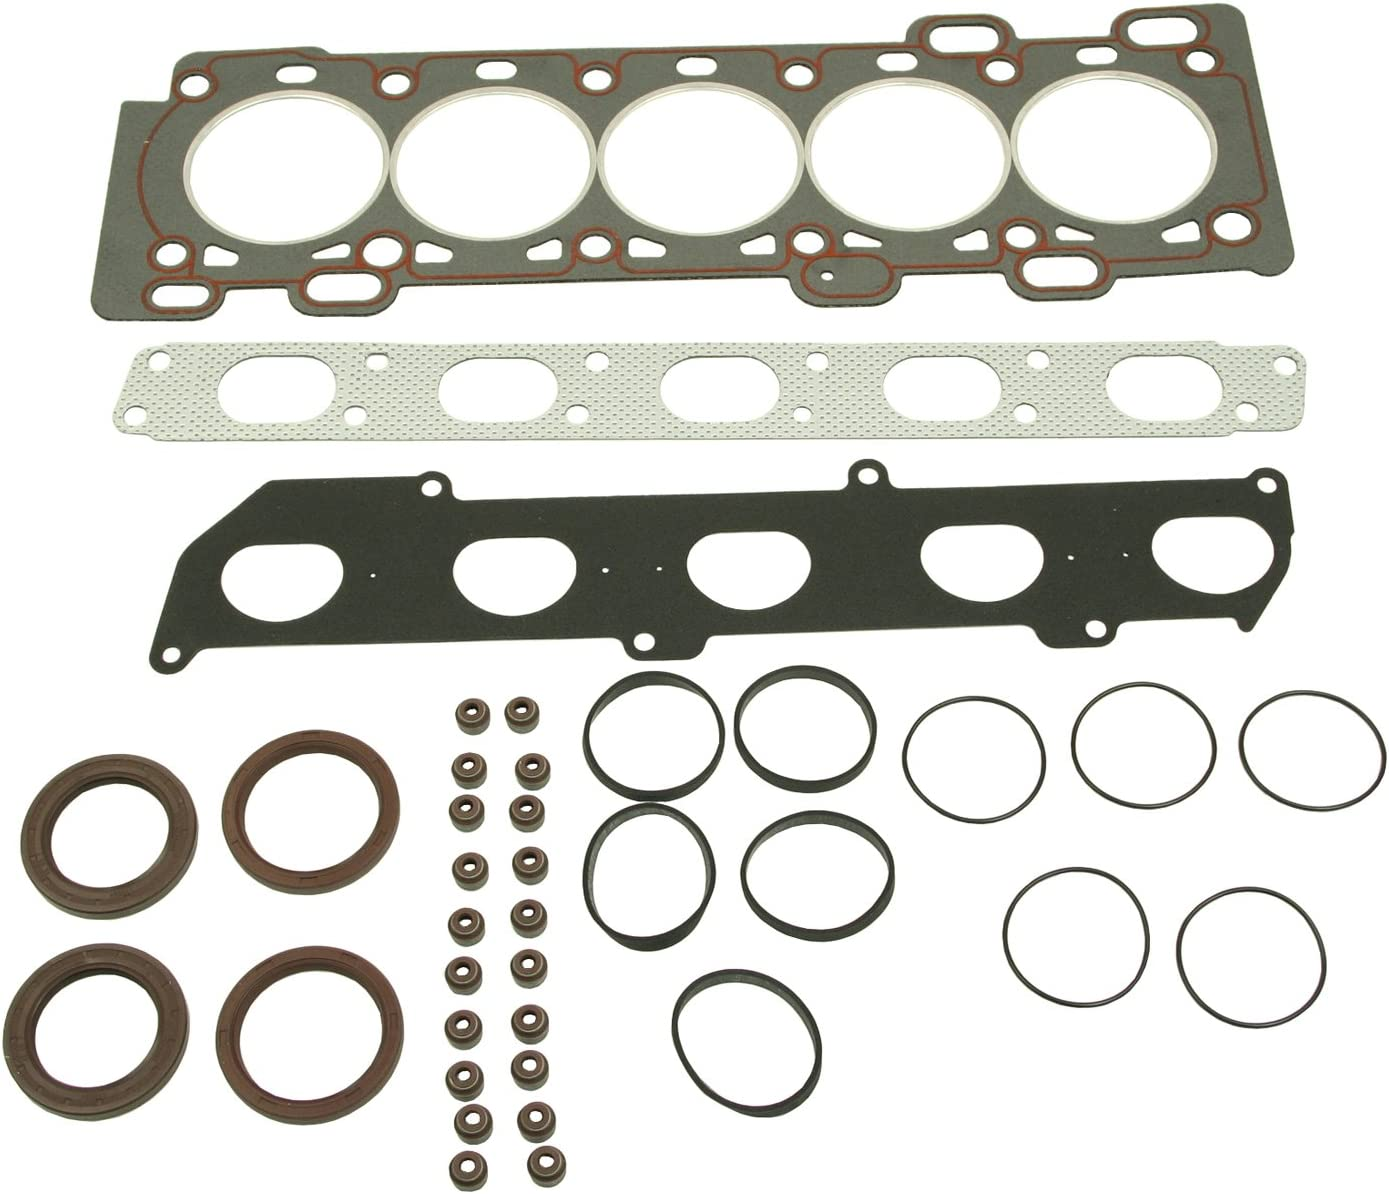 NEW before selling ☆ Beck Arnley 032-3023 Head Set Gasket service